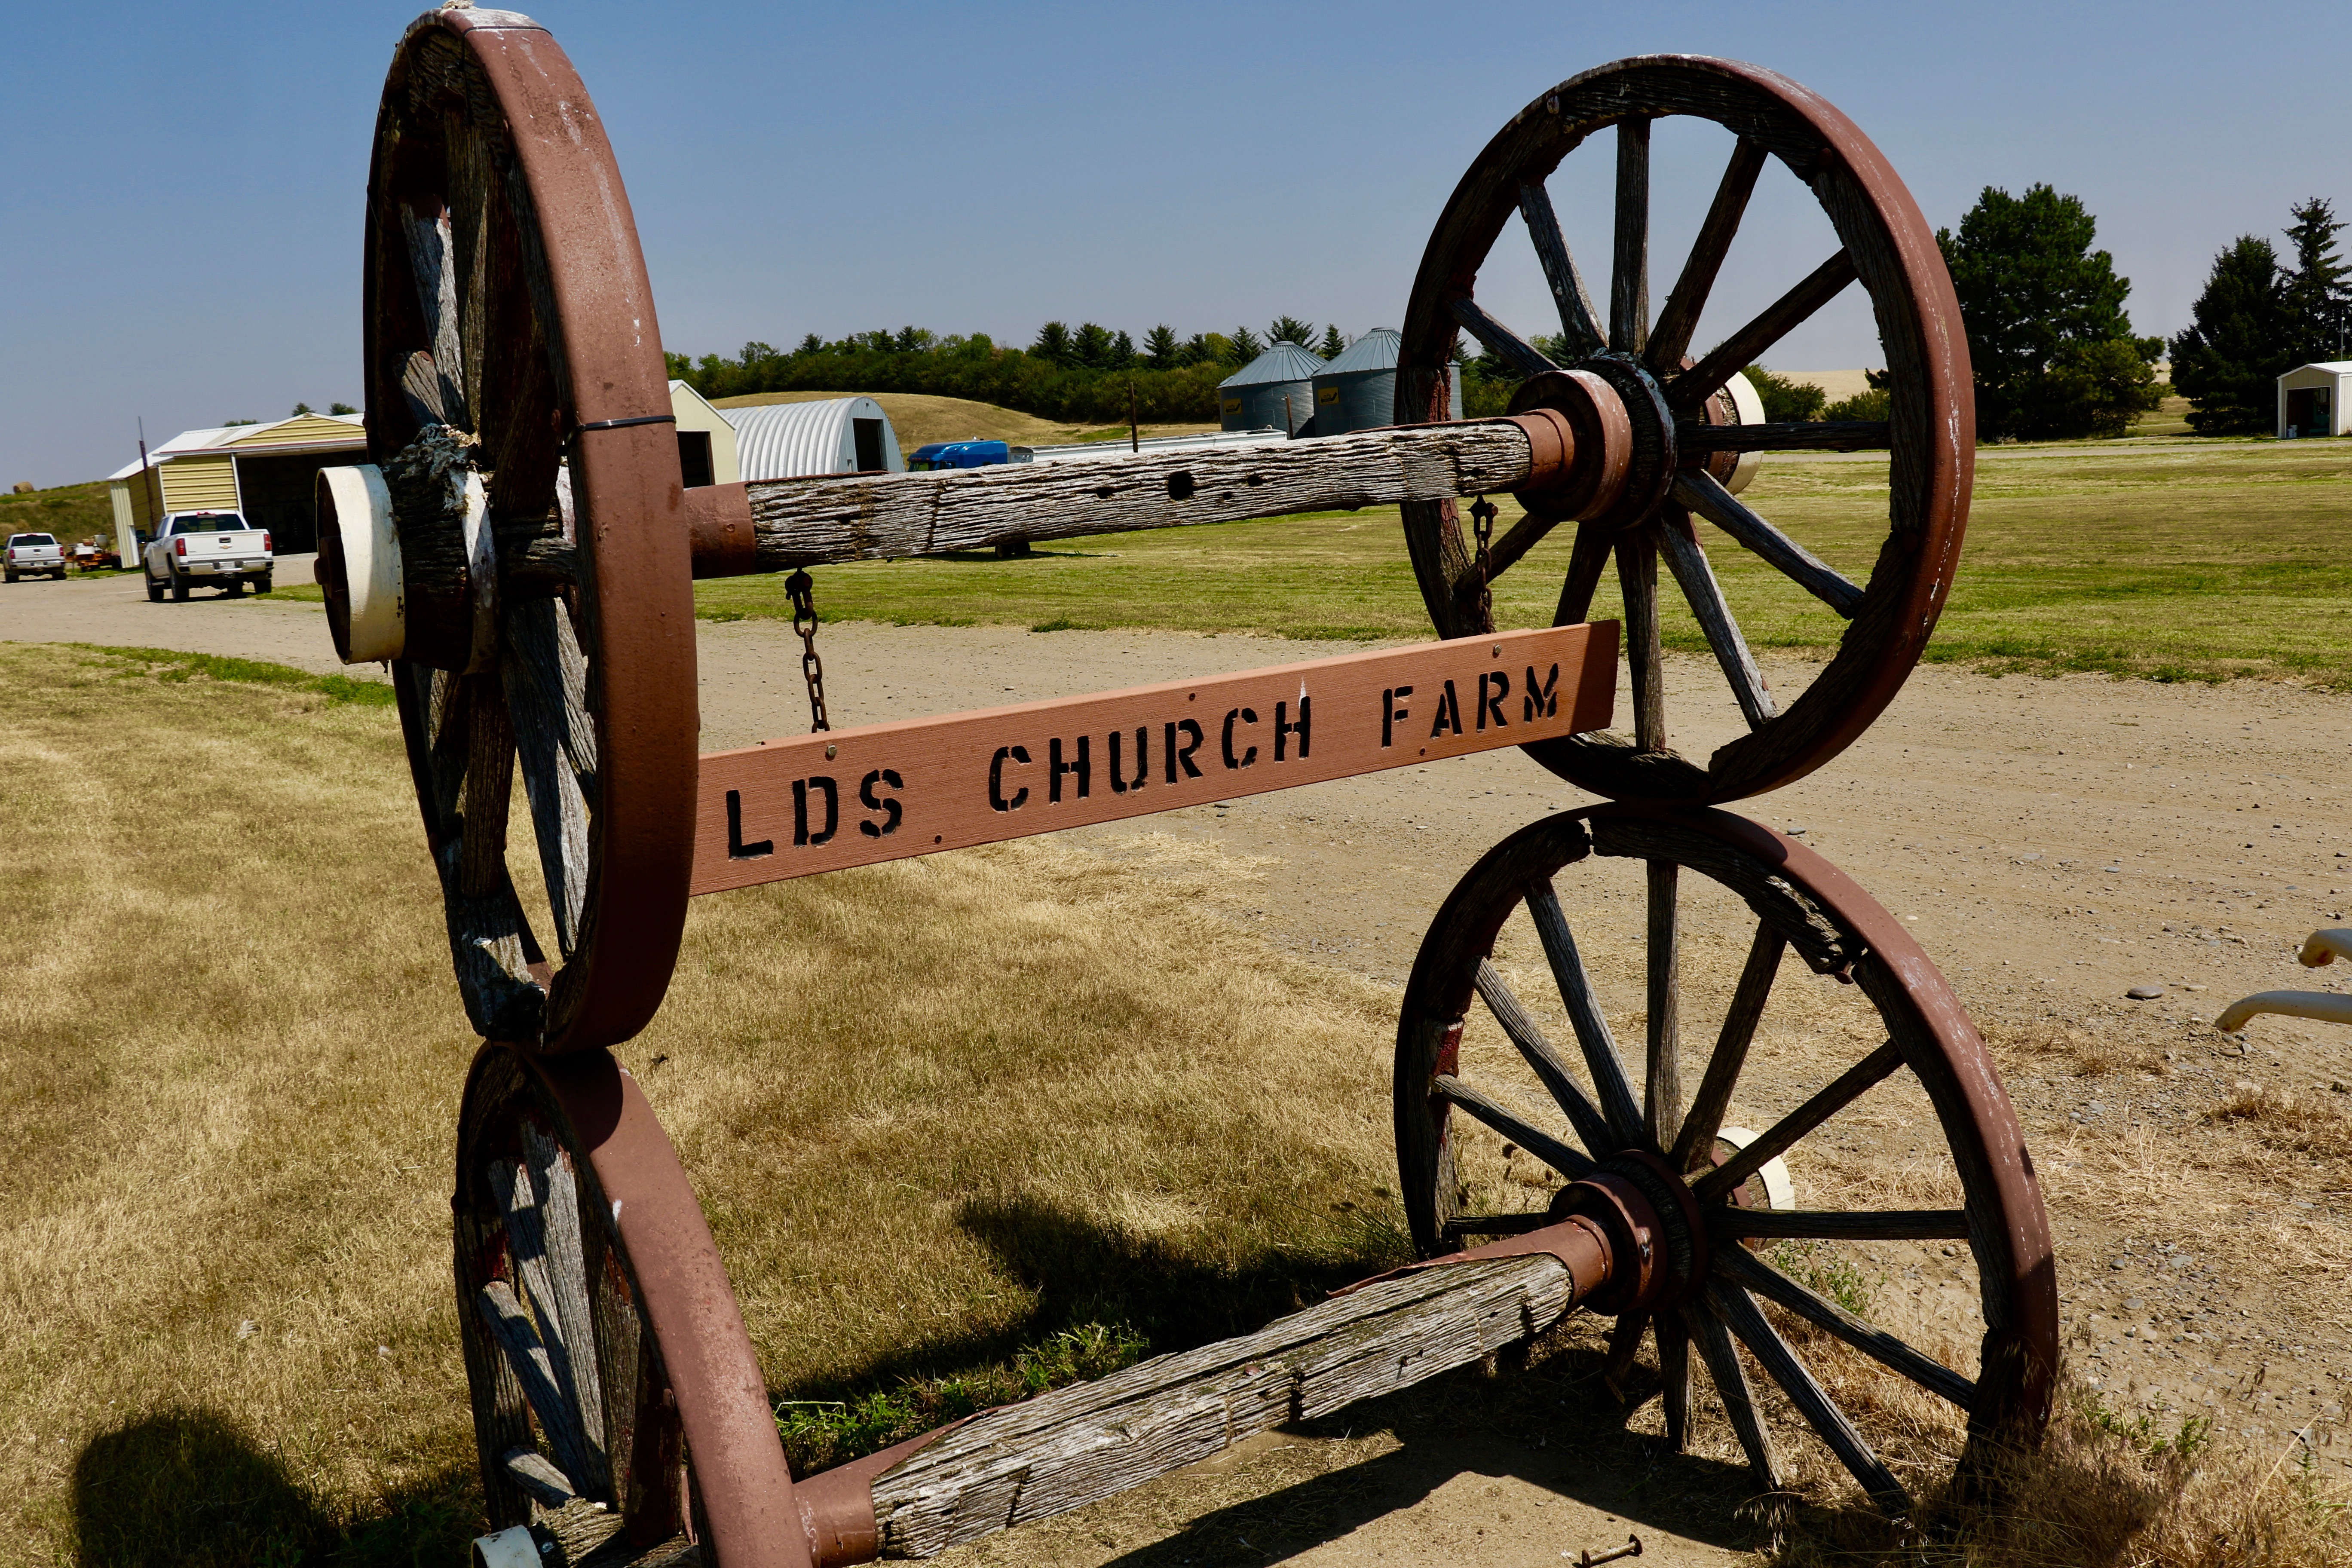 Rustic wagon wheel sign welcomes visitors to the Church-owned Geraldine Montana Crops welfare farm in northwest Montana. Despite ongoing drought parching the Western United States, the Montana farms expects an abundant wheat crop in 2021.